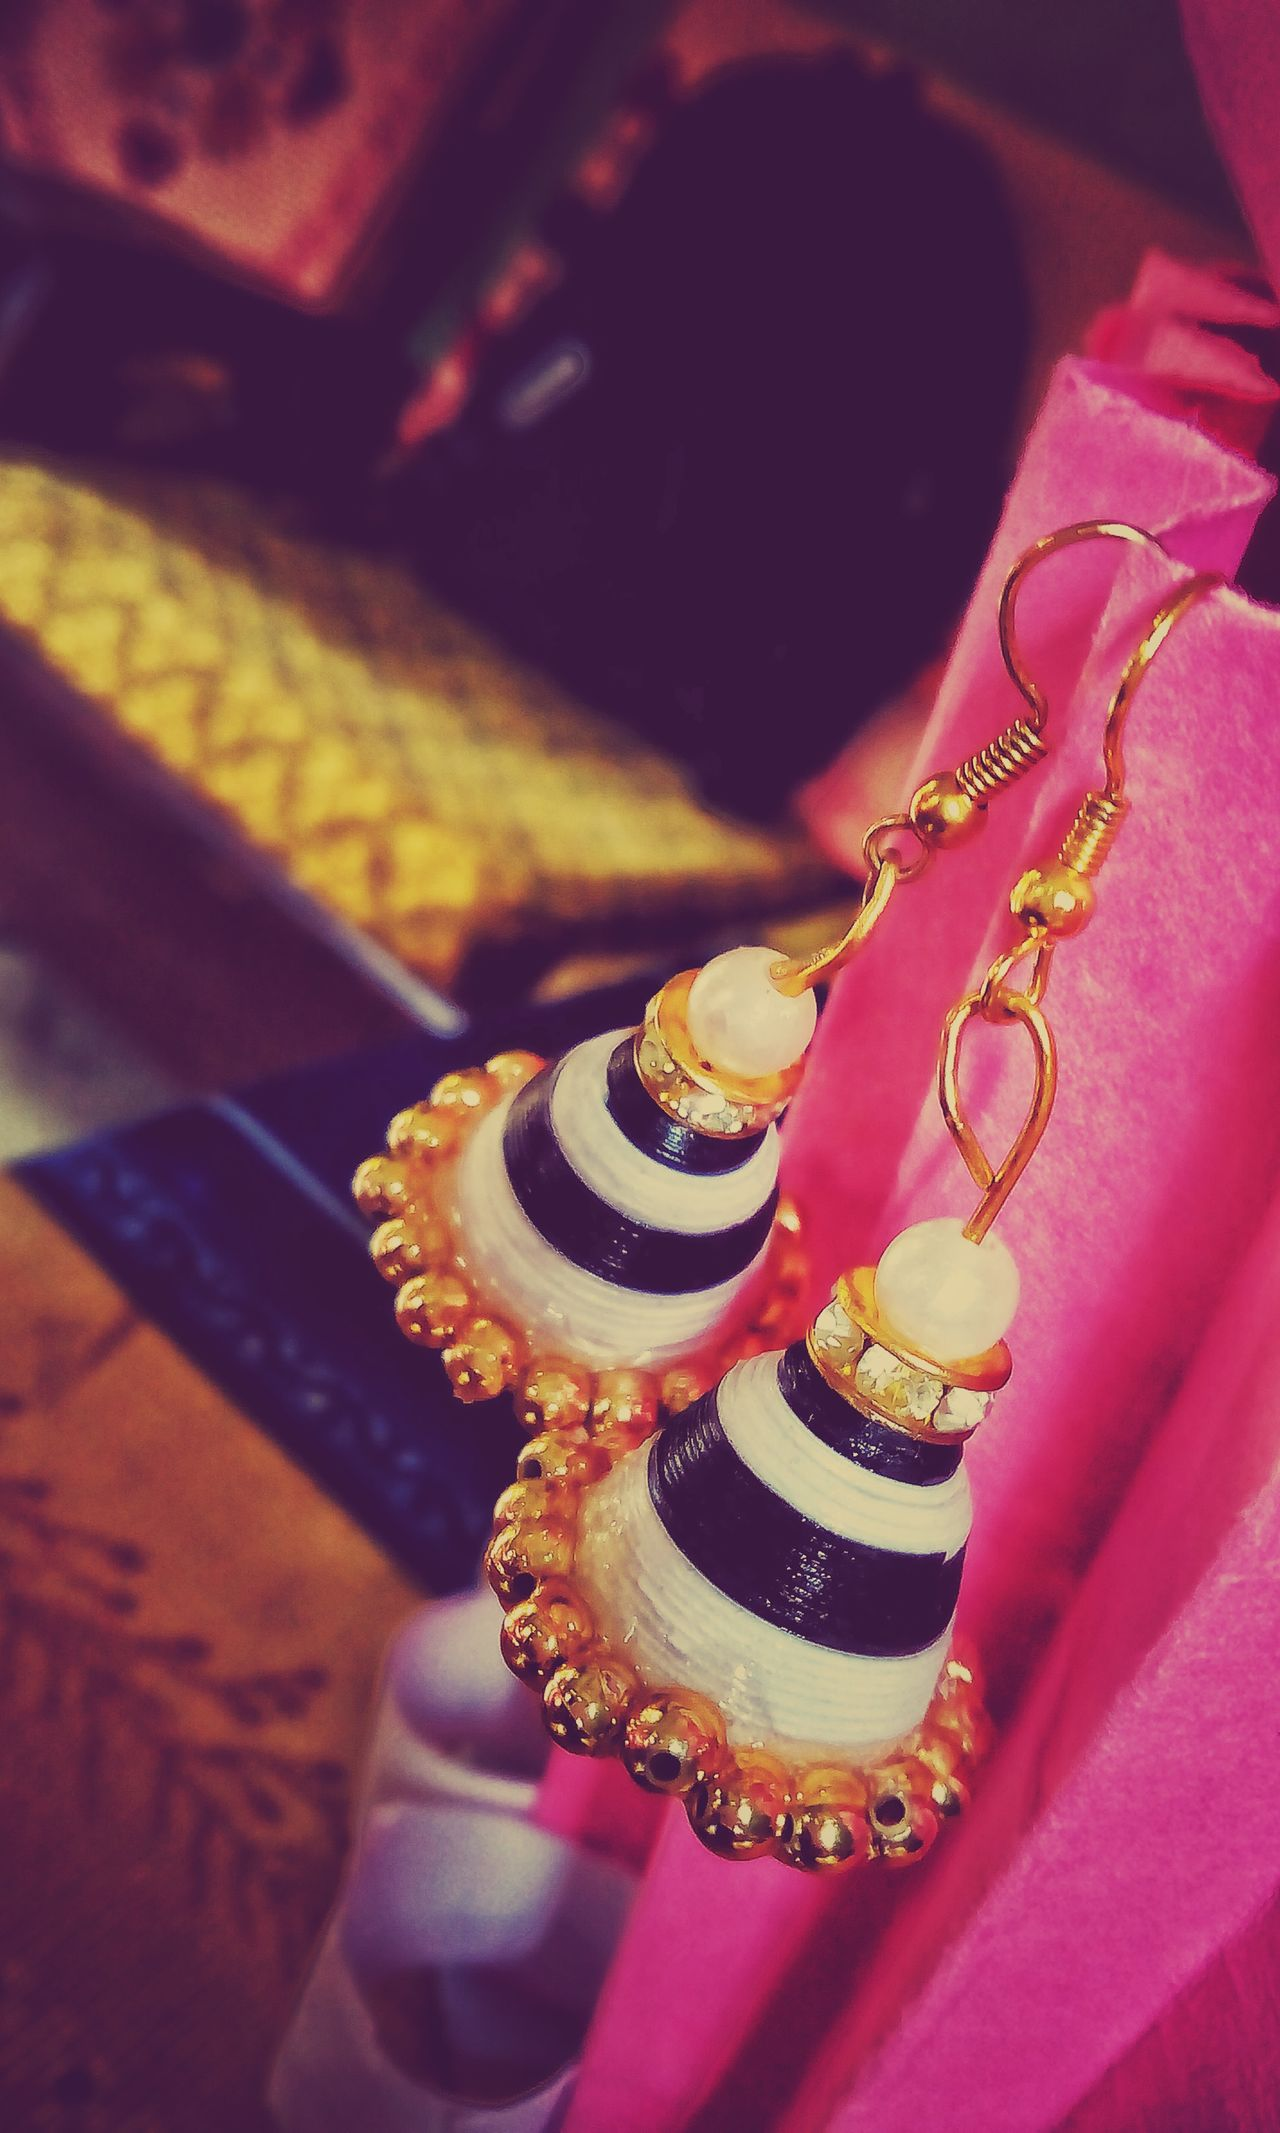 Jewelry Cultures Indoors  Close-up Adult Hand Made Paperwork Jhumka White And Black